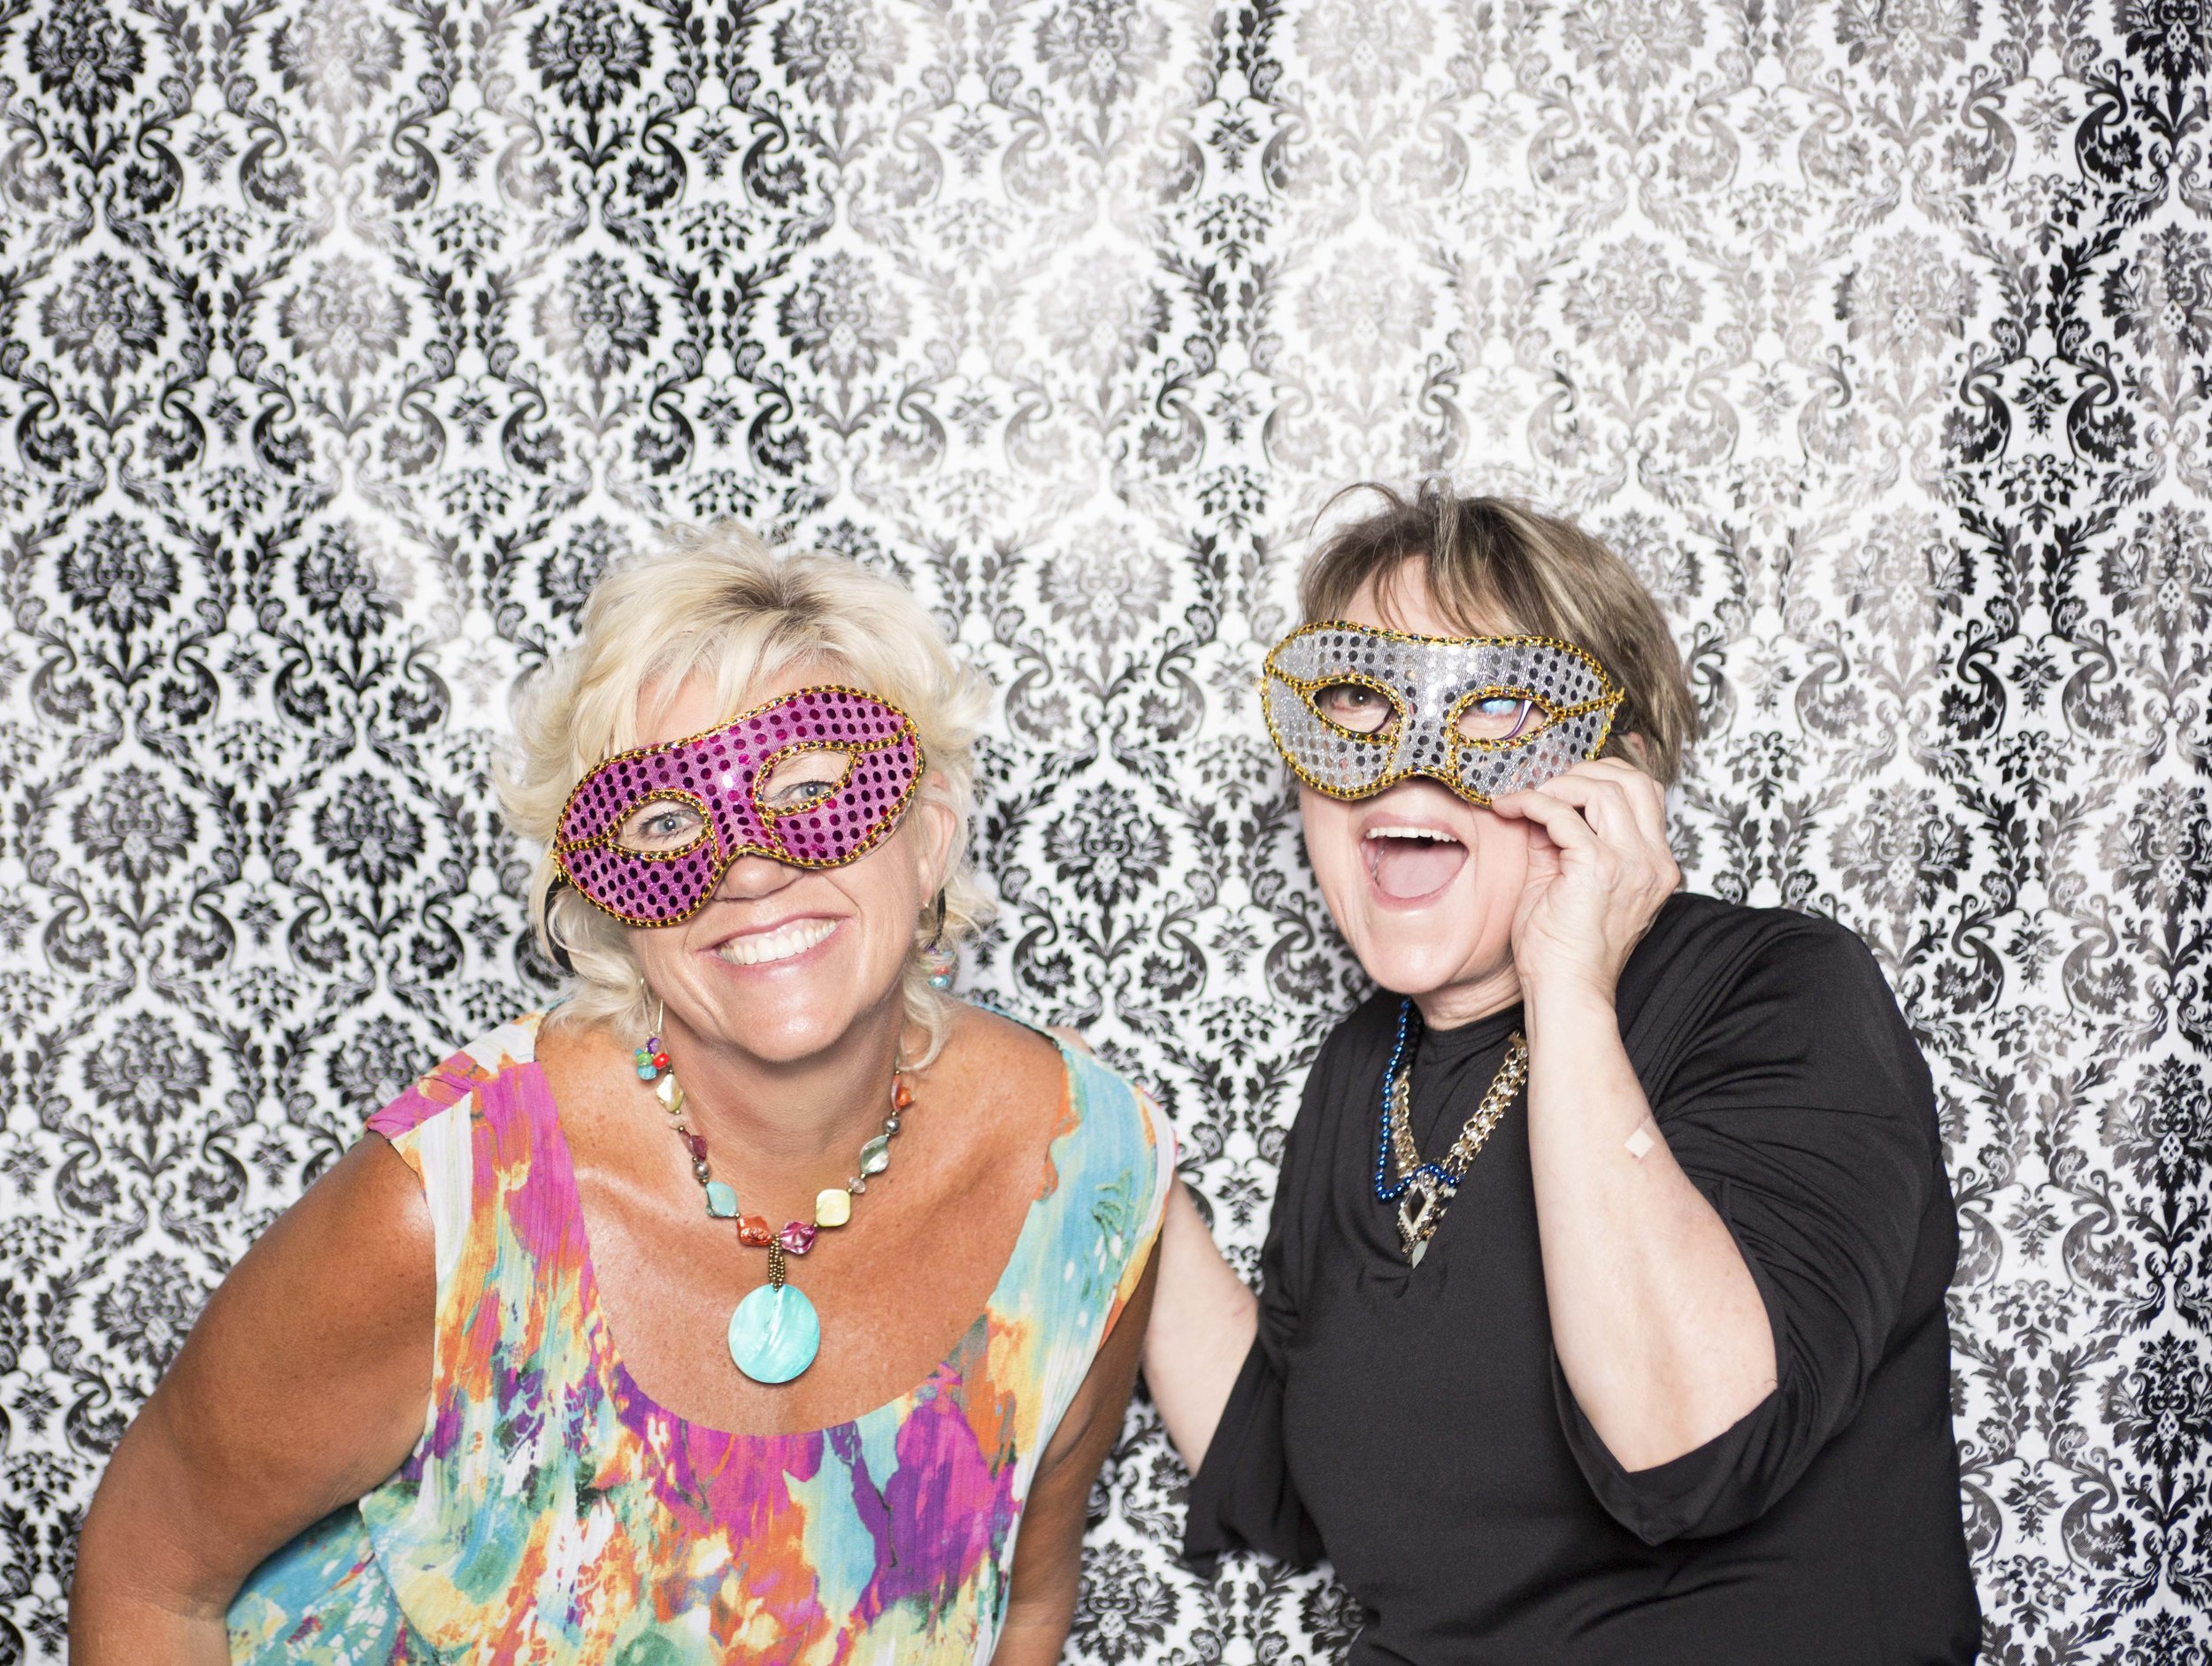 Sheila & Steve - Wedding Photo Booth